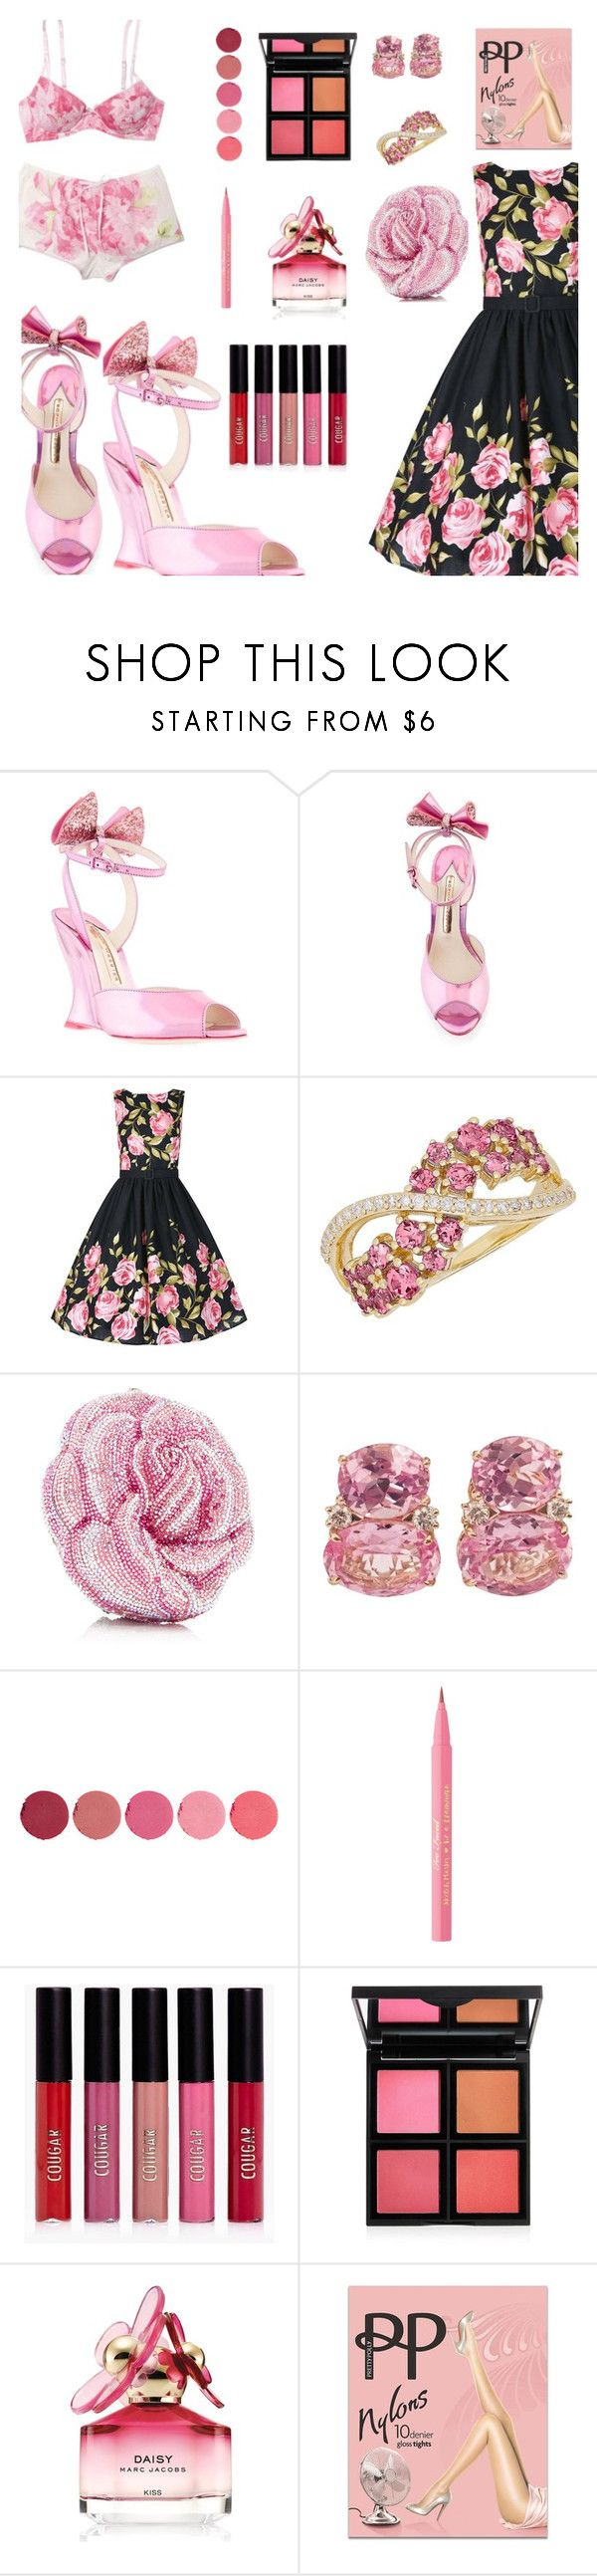 """Girly, girl shoes"" by onenakedewe ❤ liked on Polyvore featuring Sophia Webster, Lord & Taylor, Christina Addison, Kjaer Weis, Too Faced Cosmetics, Boohoo, Charlotte Russe, Marc Jacobs, Pretty Polly and girlyshoes"